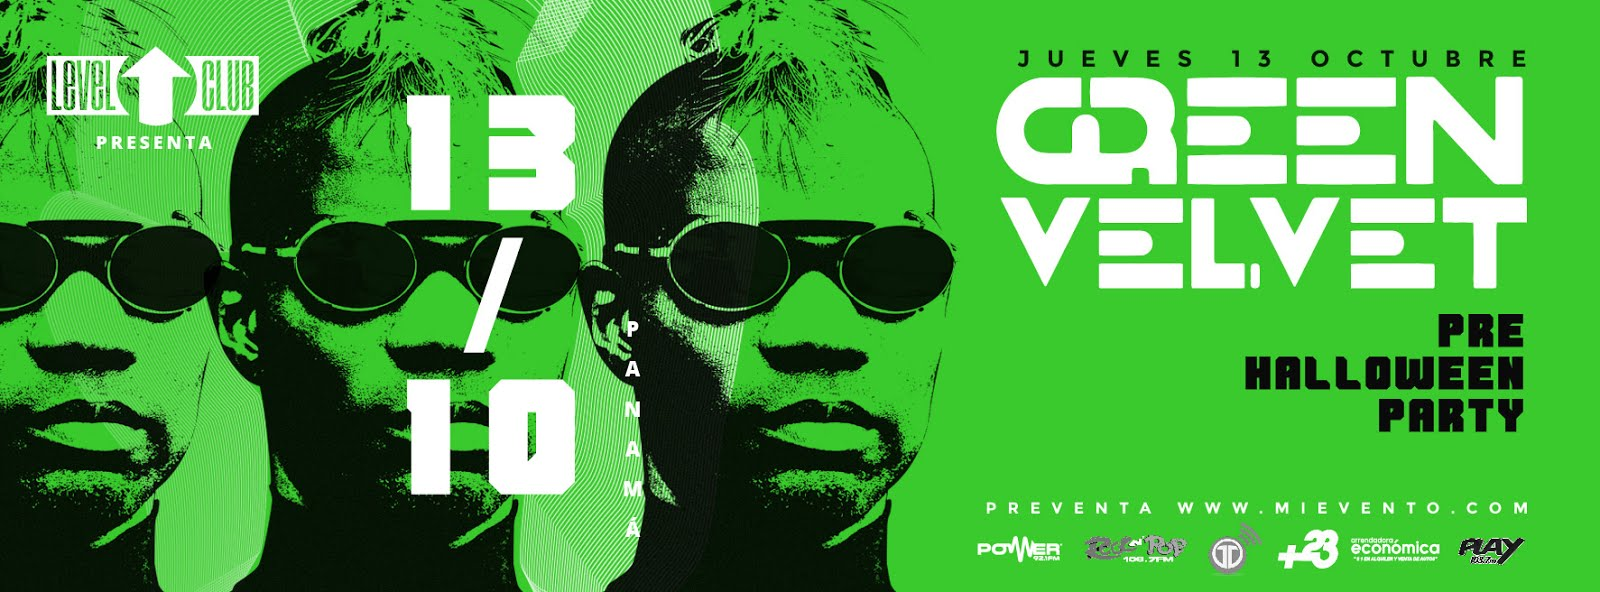 Green Velvet - Level Club